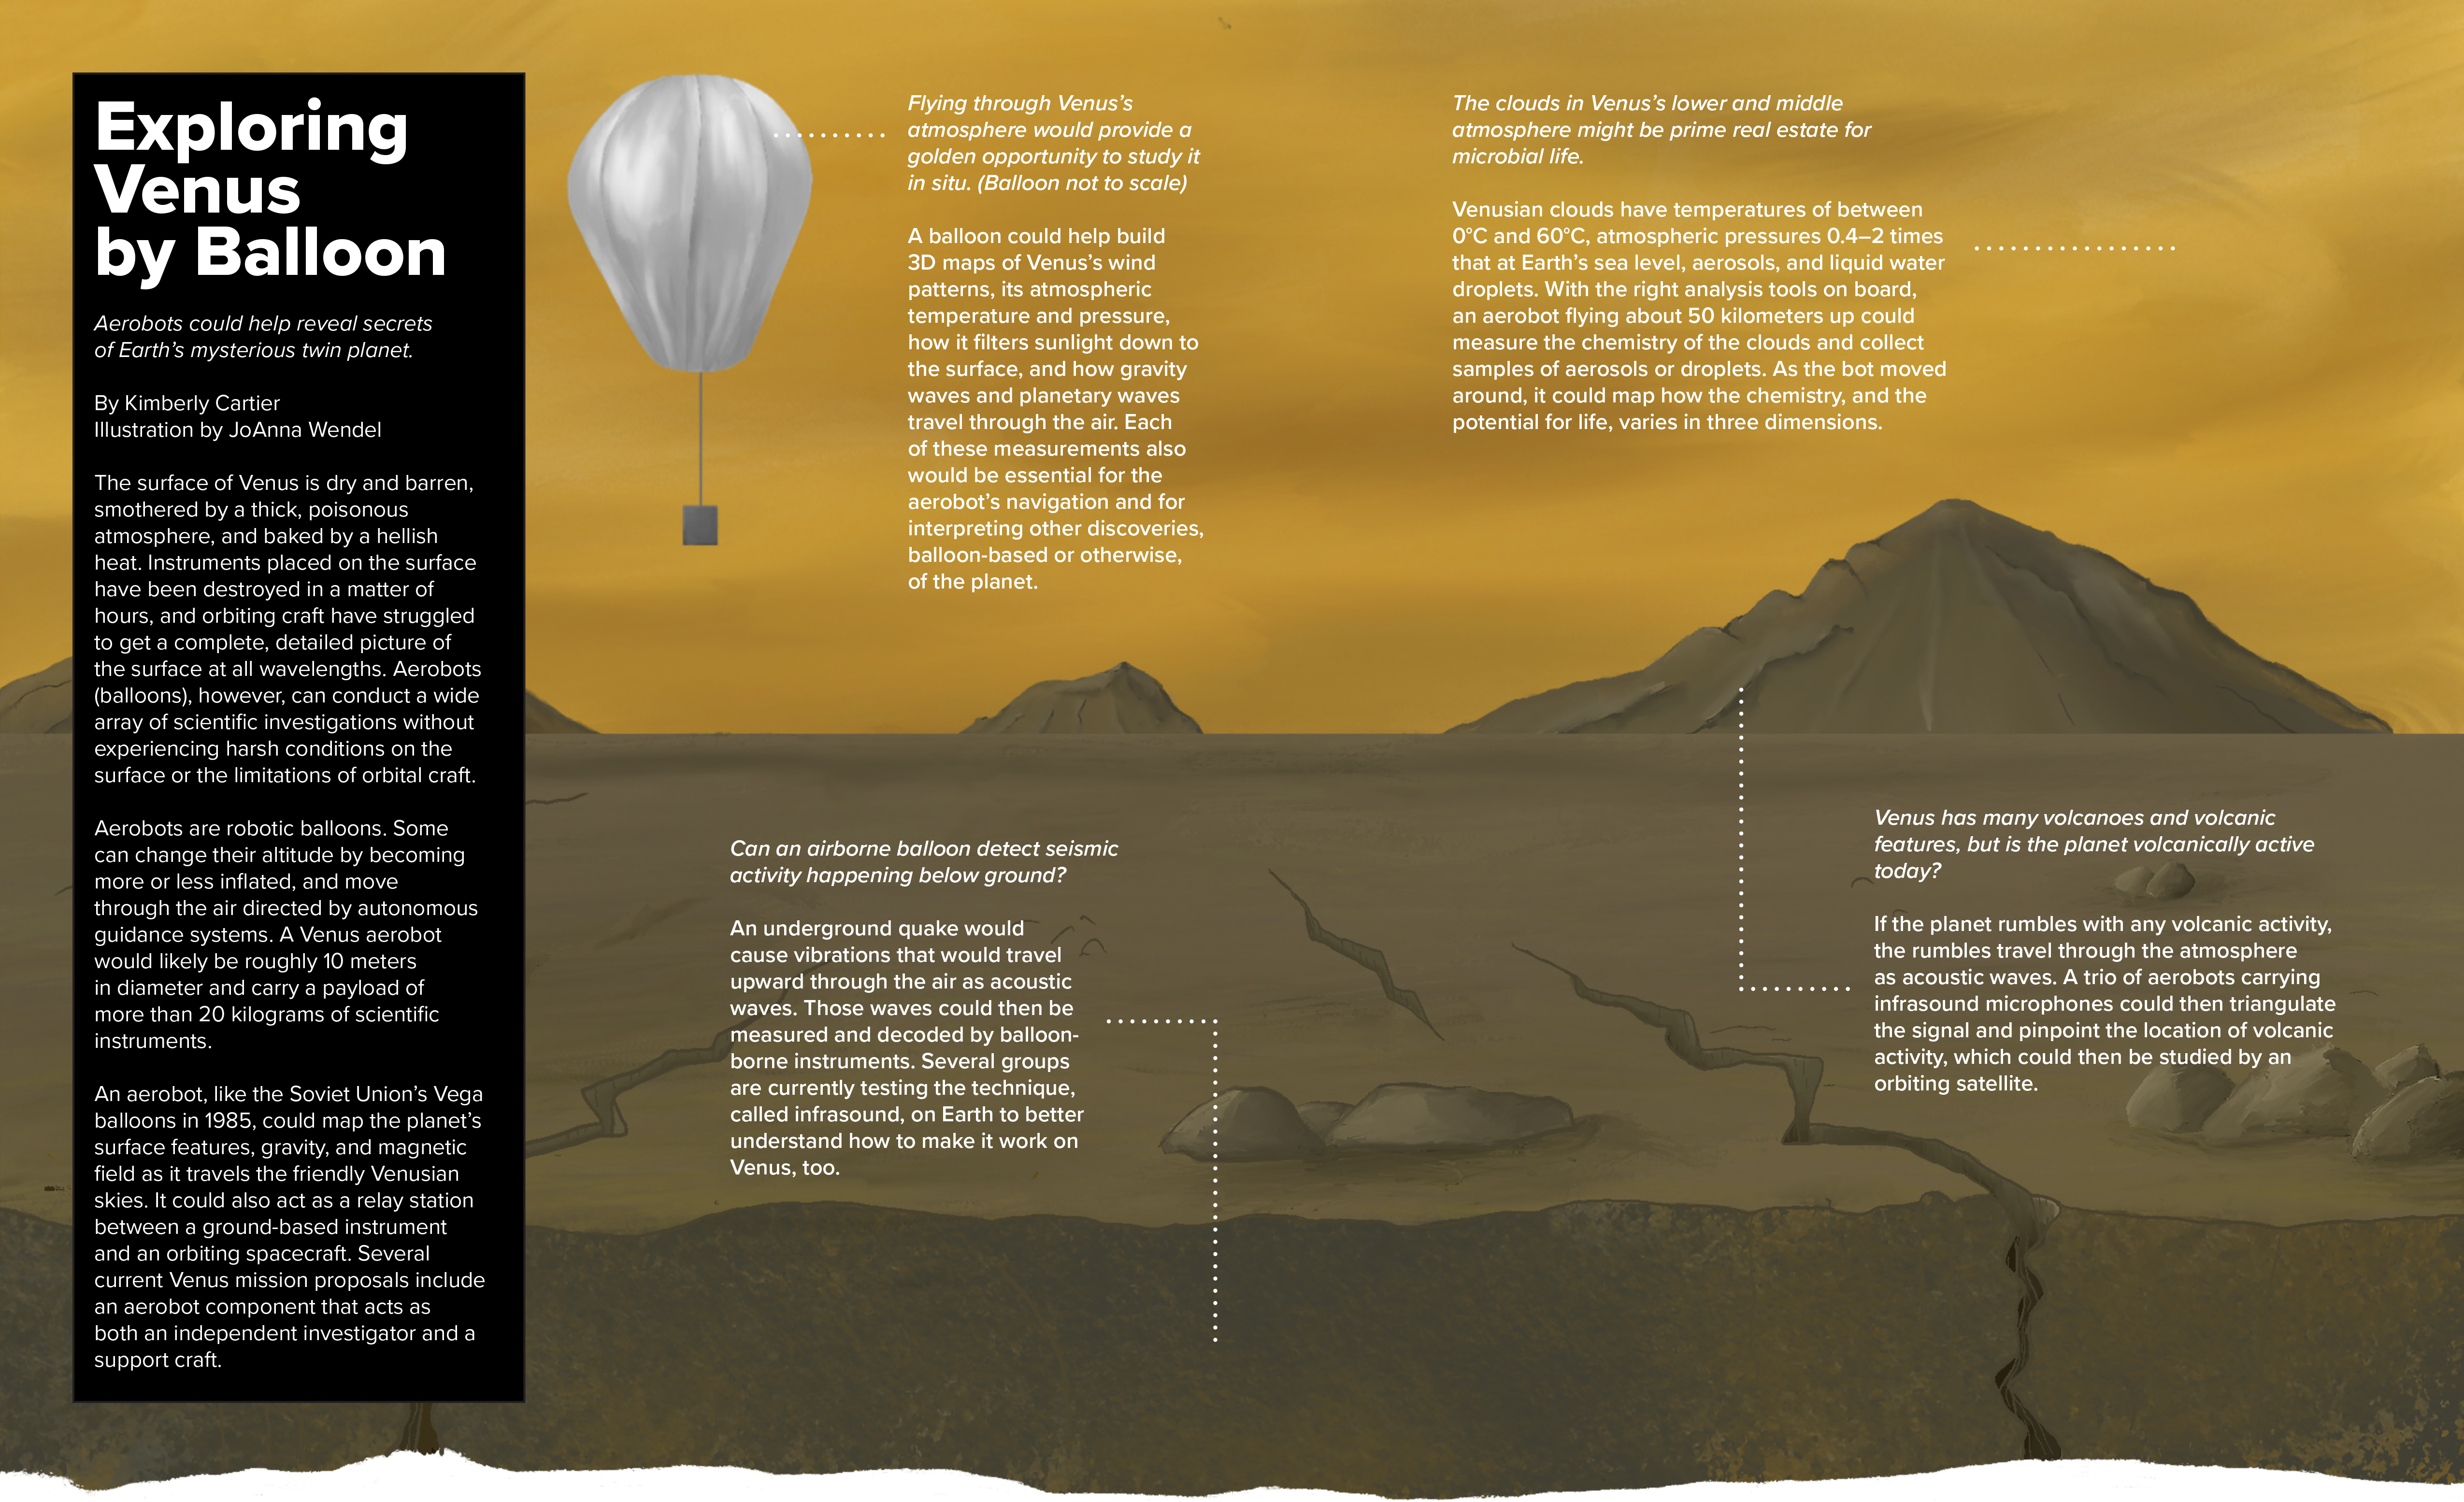 An infographic explaining how robotic balloons could help explore Venus